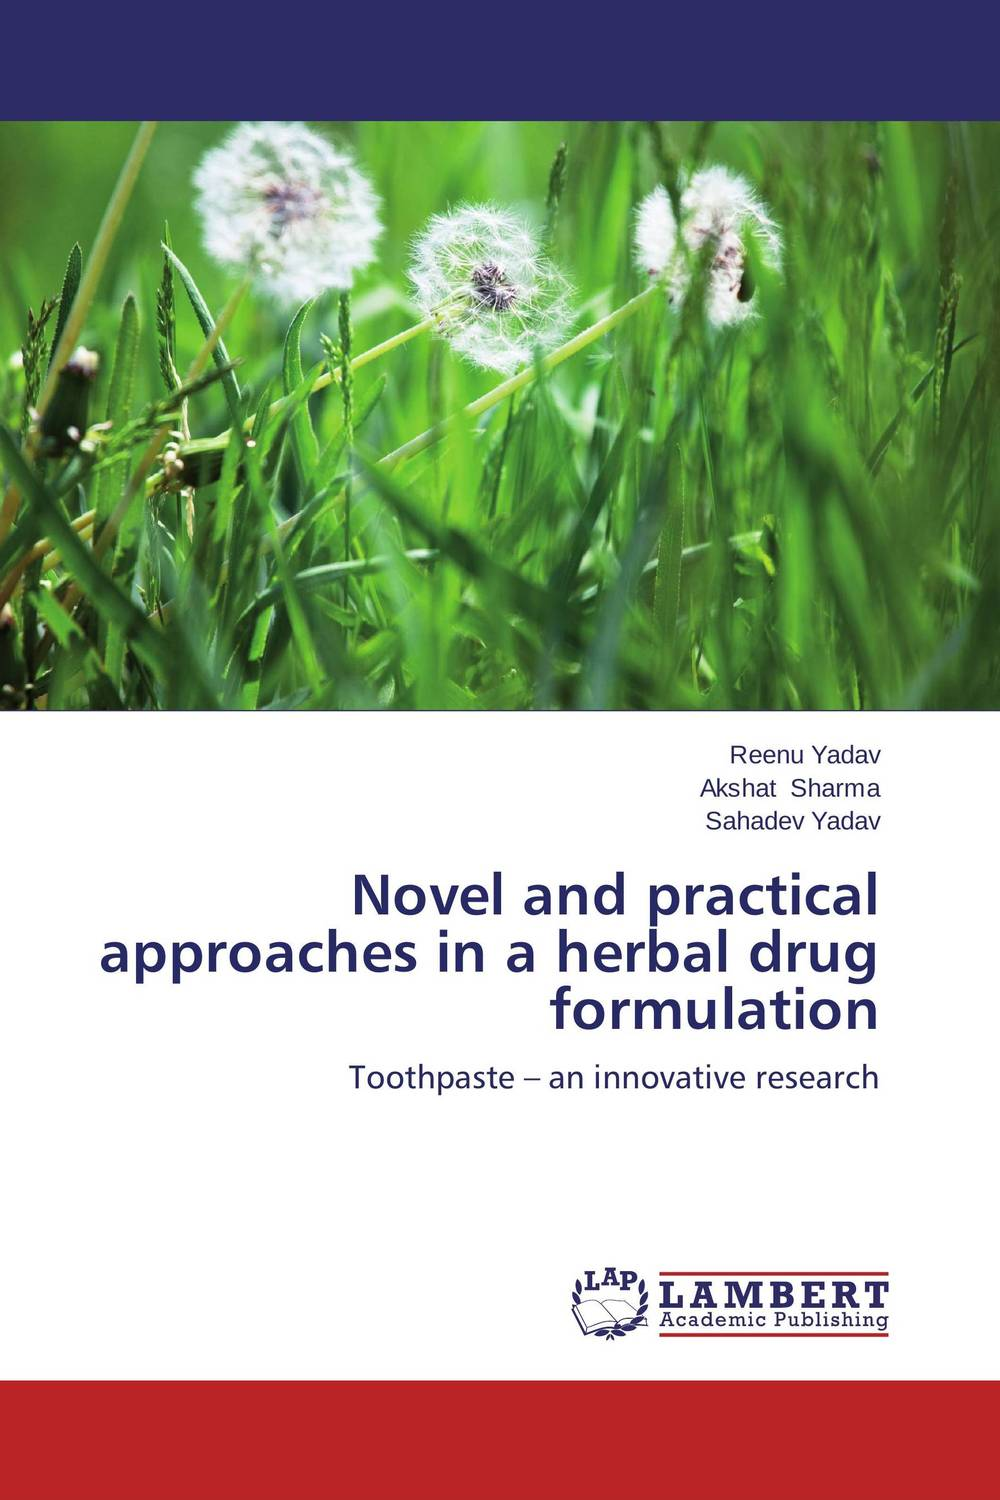 Novel and practical approaches in a herbal drug formulation the lonely polygamist – a novel